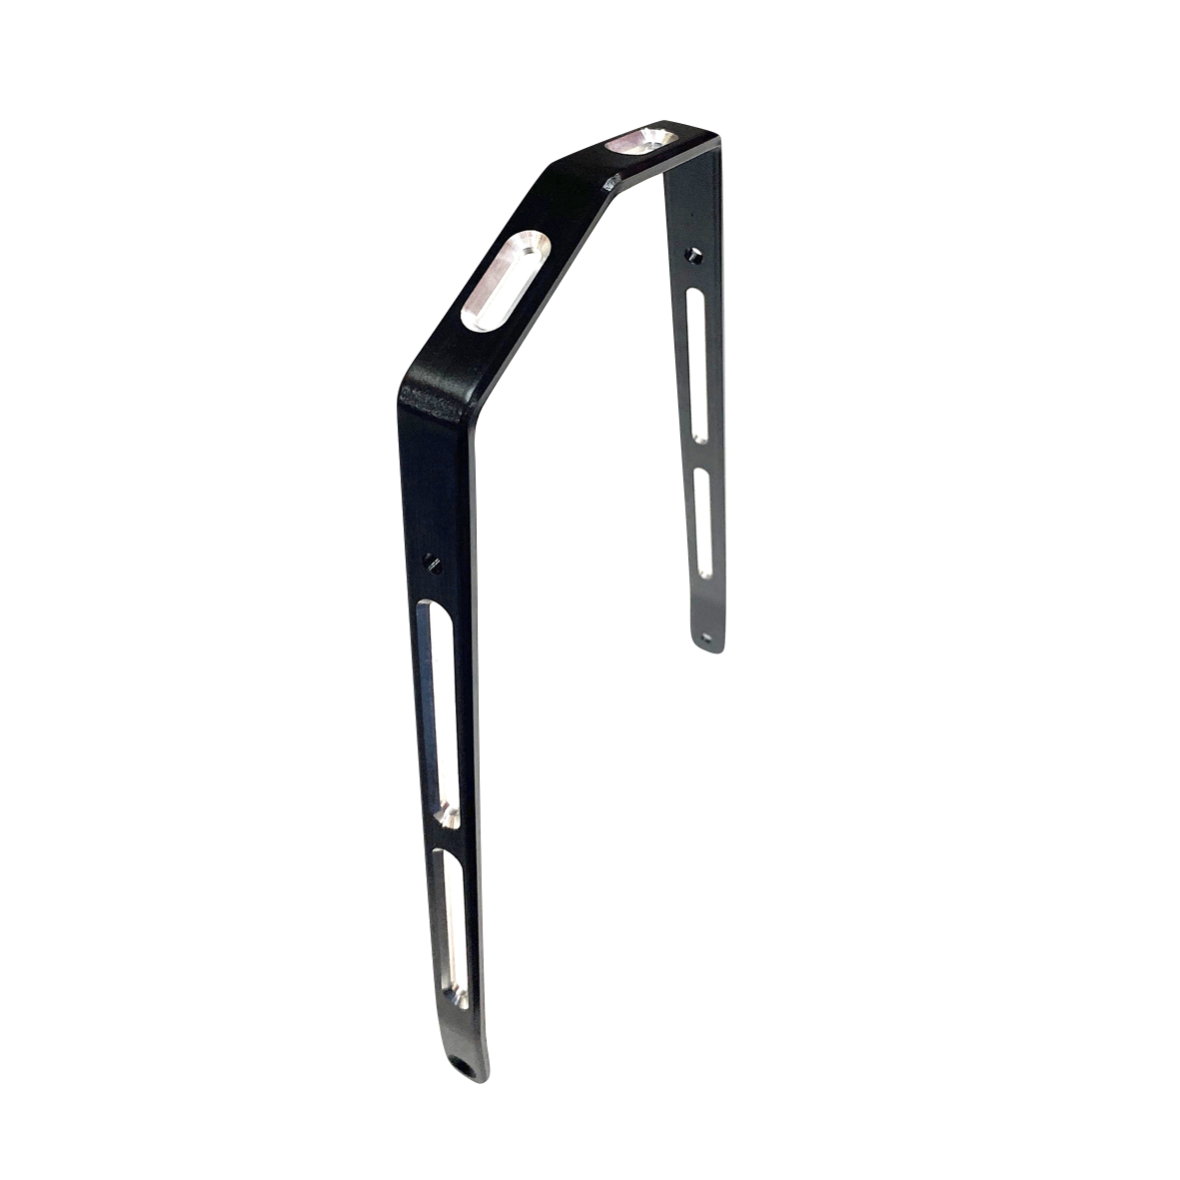 JHI PUSH BAR - BLACK